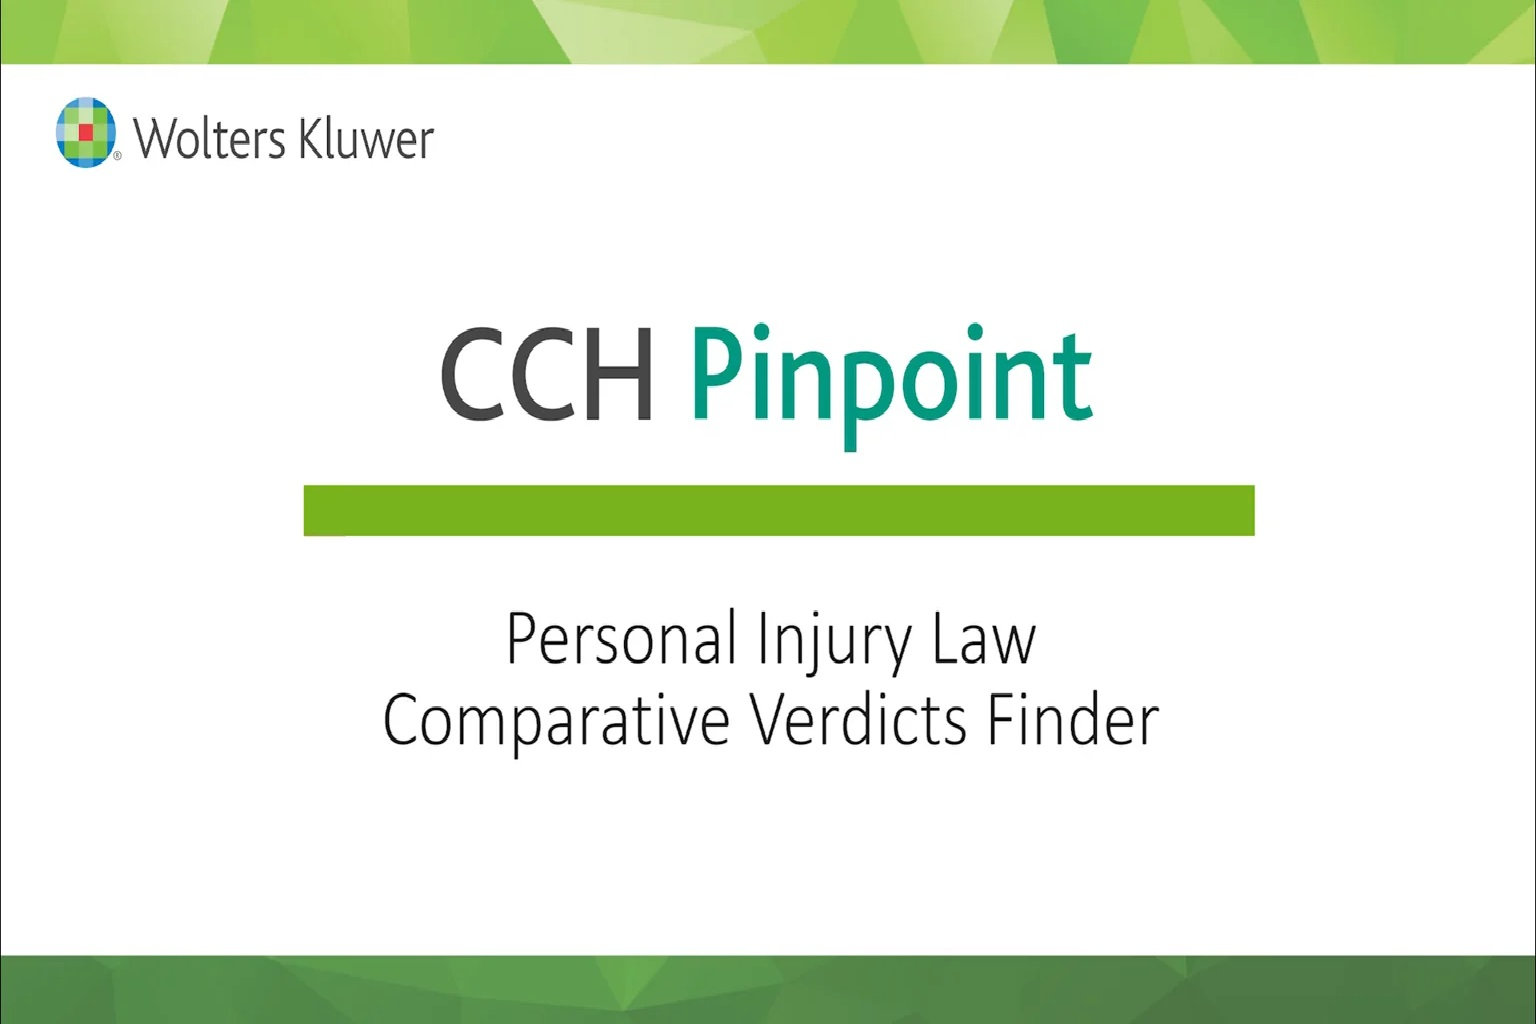 Personal Injury Law Comparative Verdicts Finder